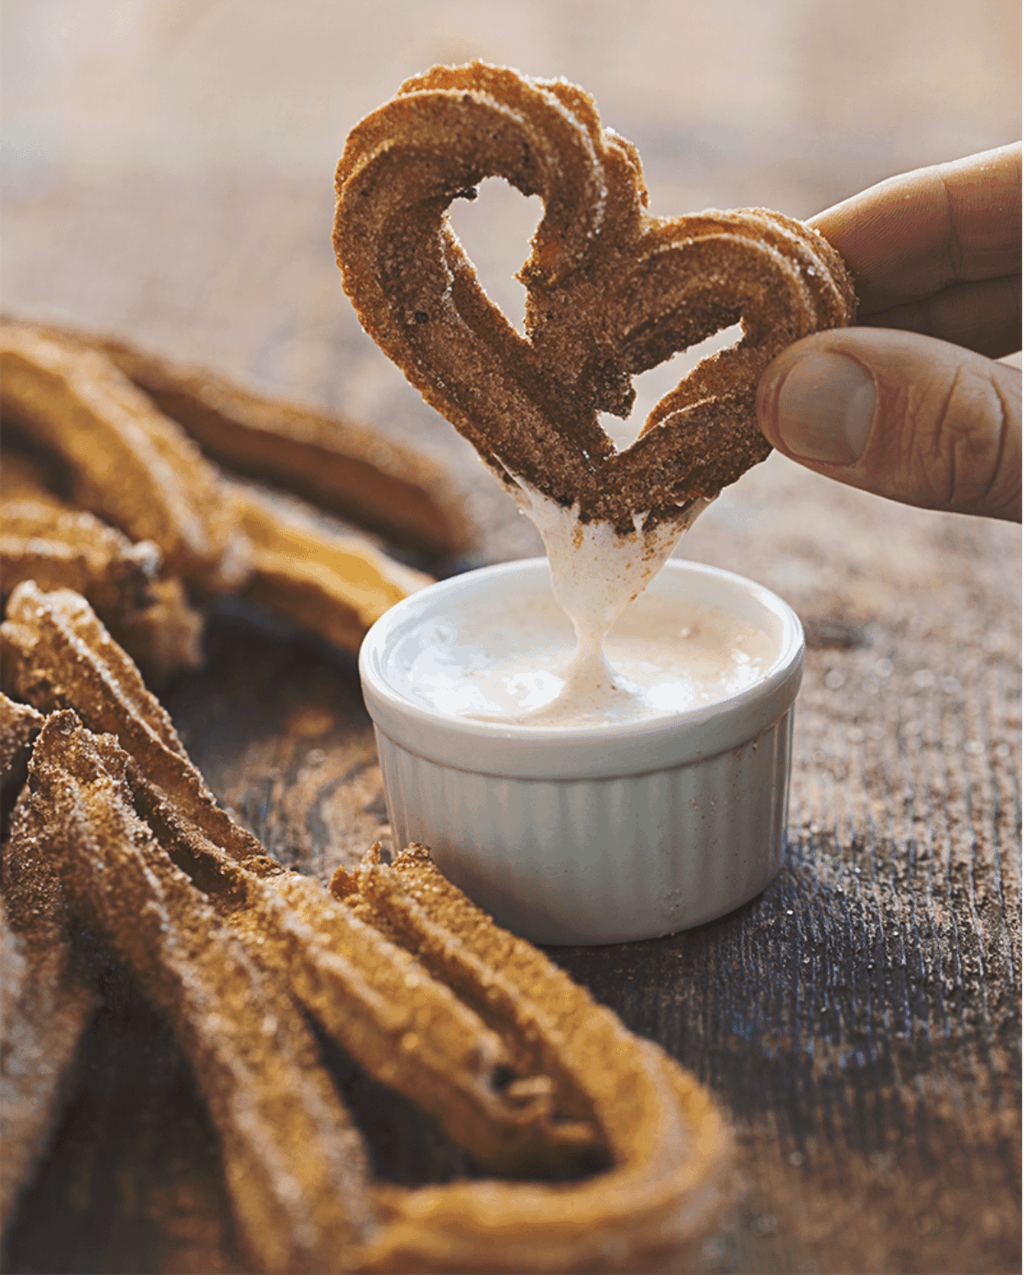 Vegan Gluten-Free Churros with Cinnamon Aquafaba Frosting by So Delicious Dairy-Free | 9 Aquafaba Recipes